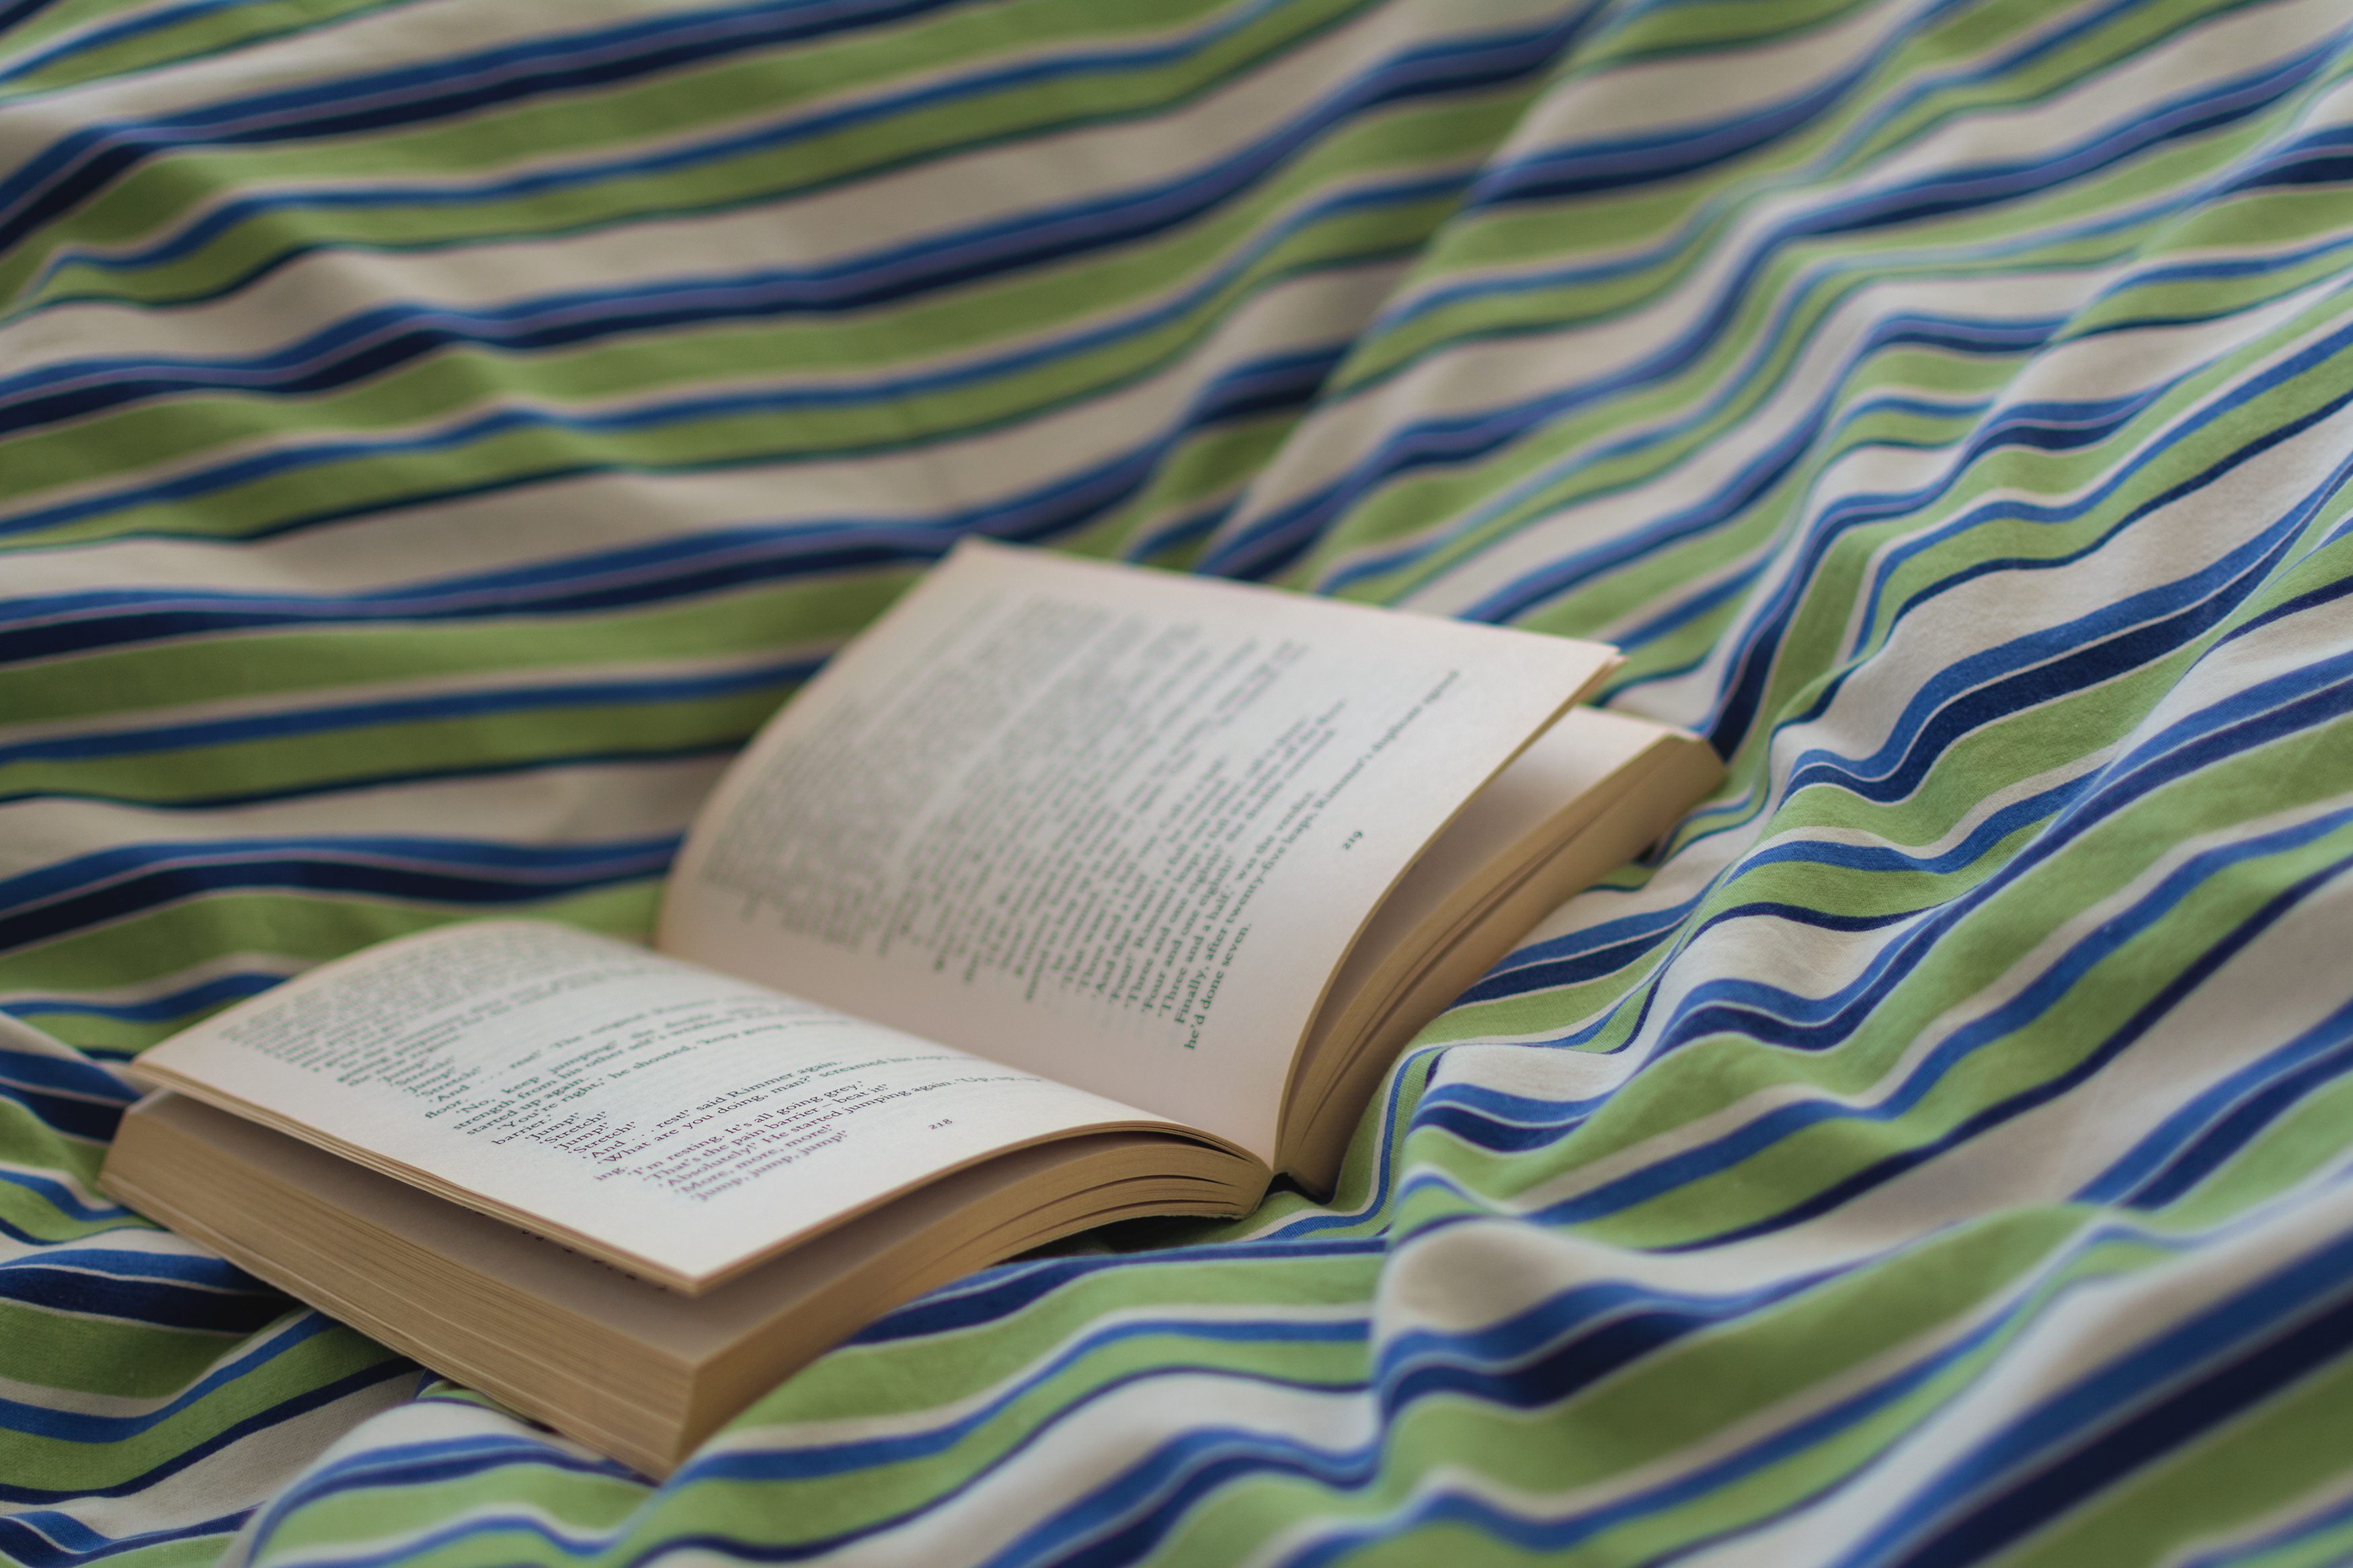 free image open book in bed libreshot public domain photos